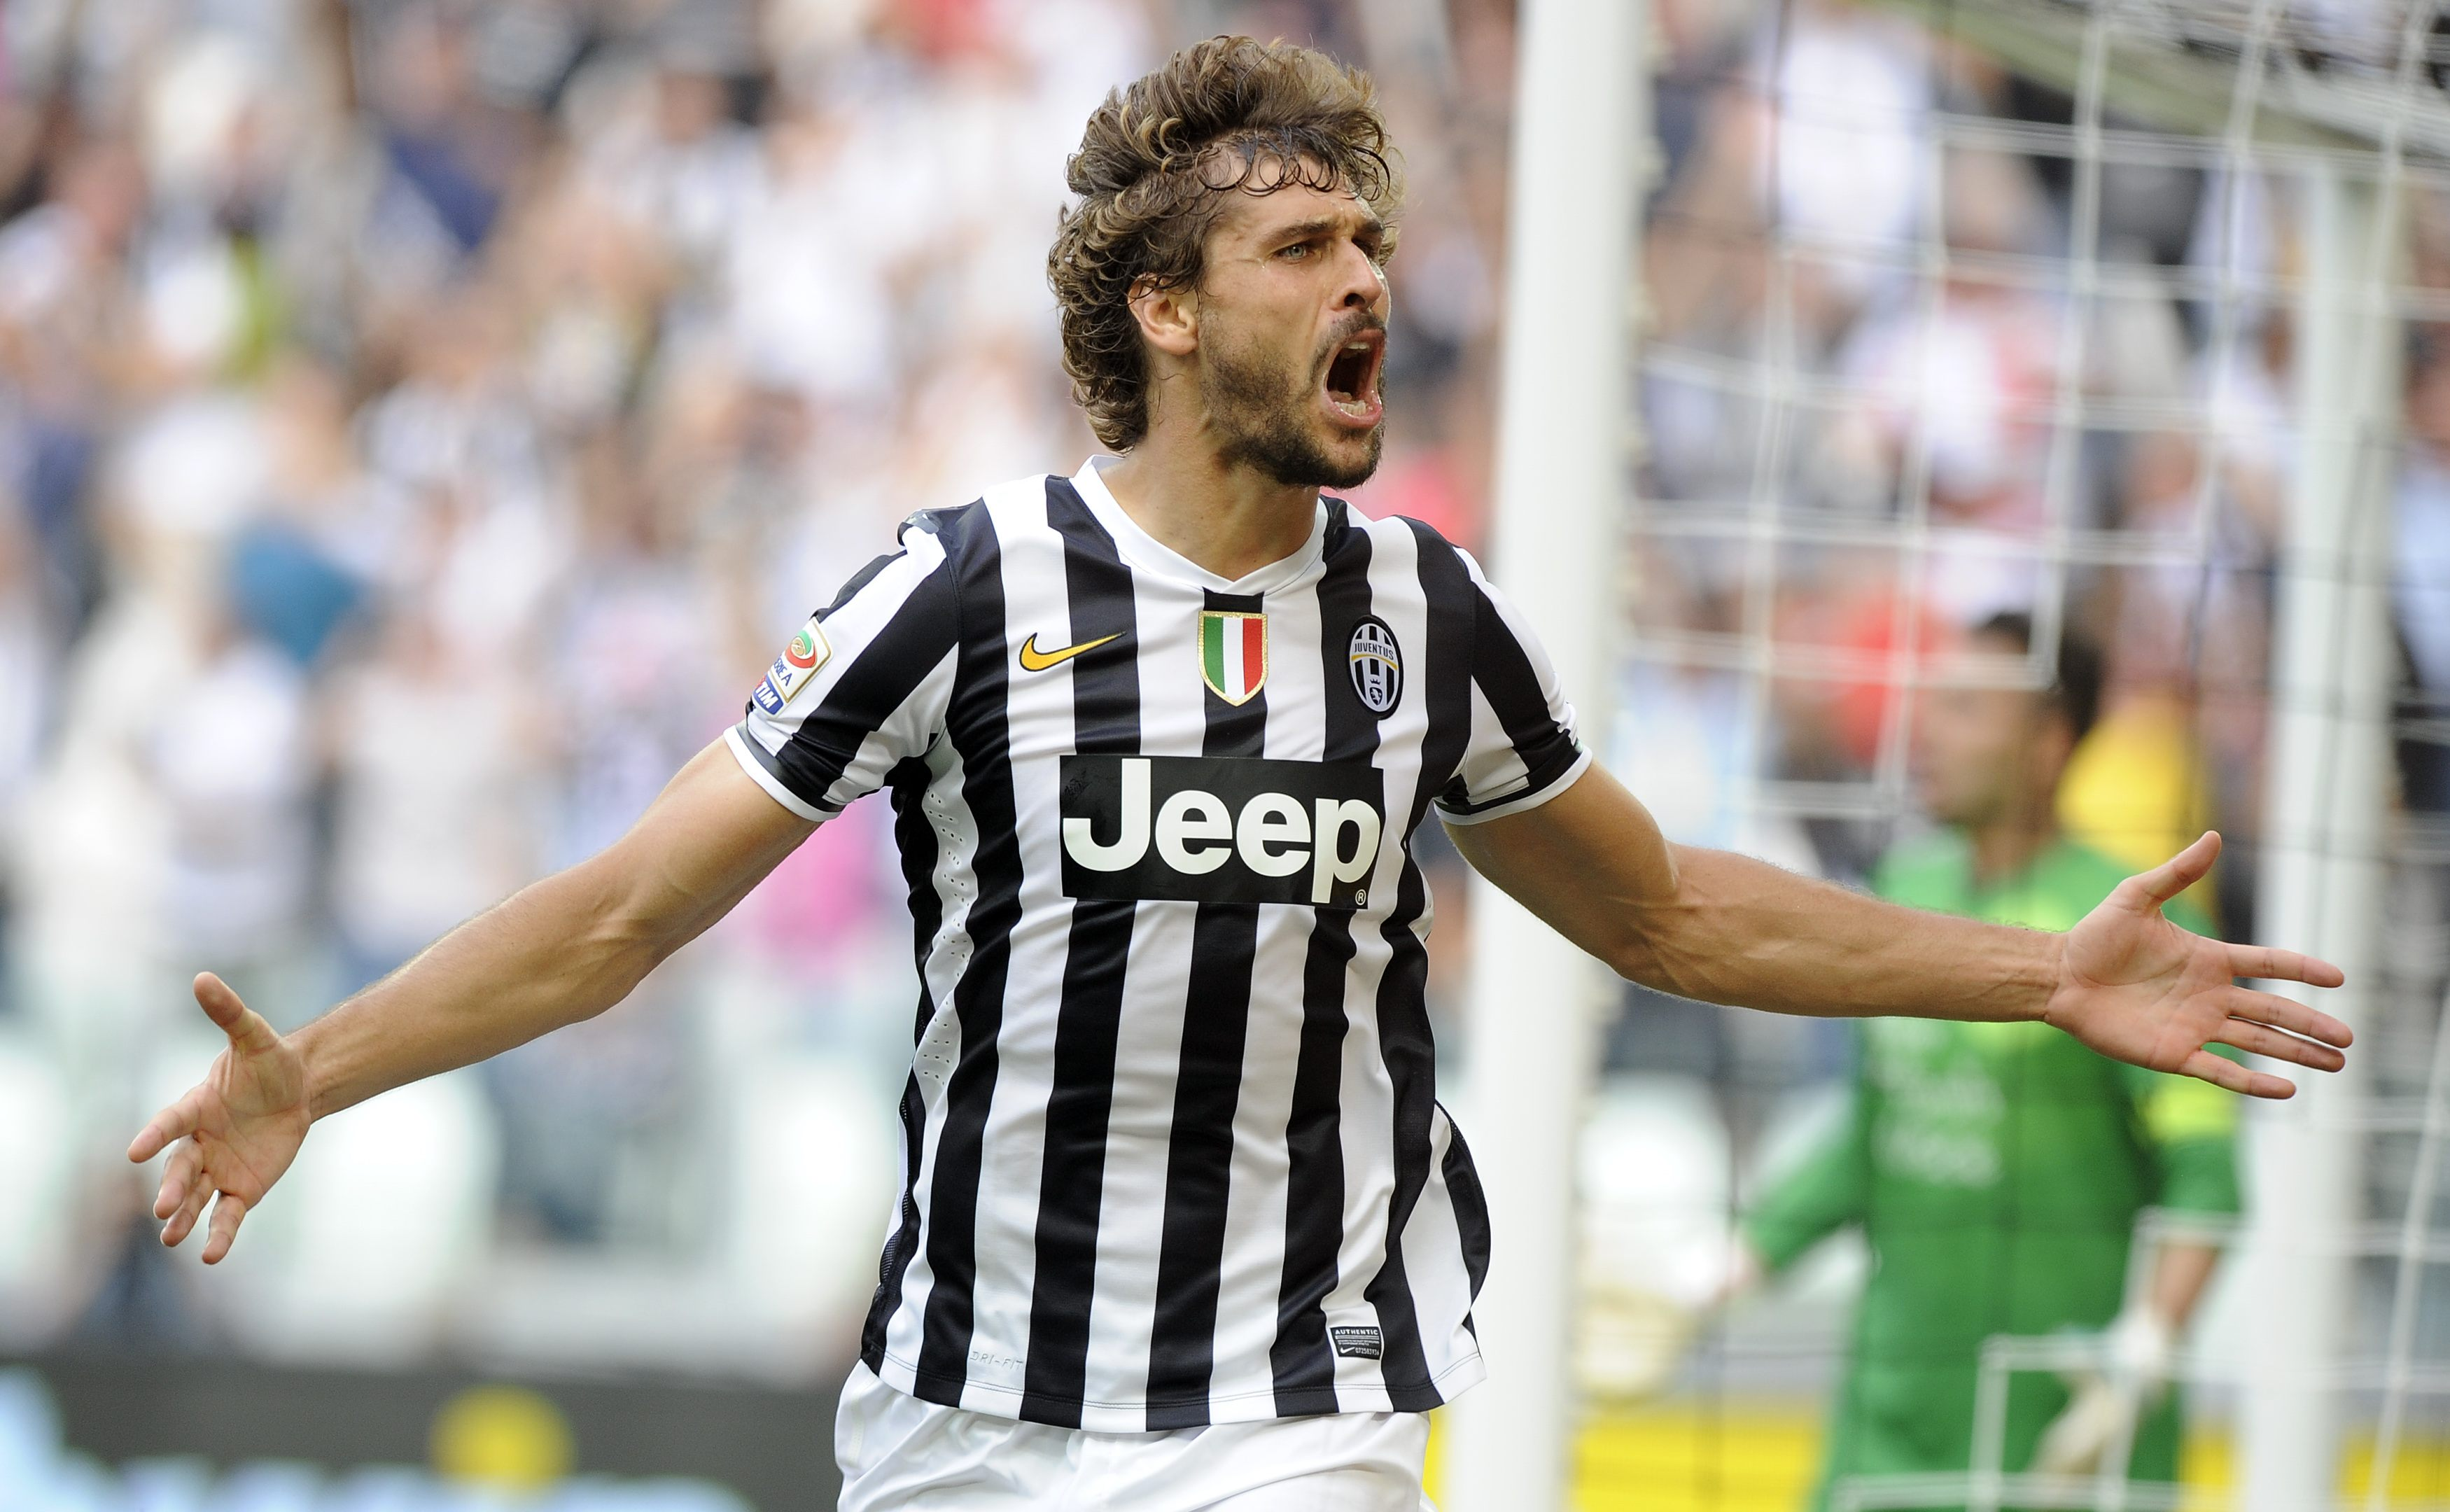 Juventus' Fernando Llorente celebrates after scoring against Hellas Verona during their Serie A soccer match at Juventus stadium in Turin September 22, 2013. REUTERS/Giorgio Perottino (ITALY - Tags: SPORT SOCCER) Picture Supplied by Action Images